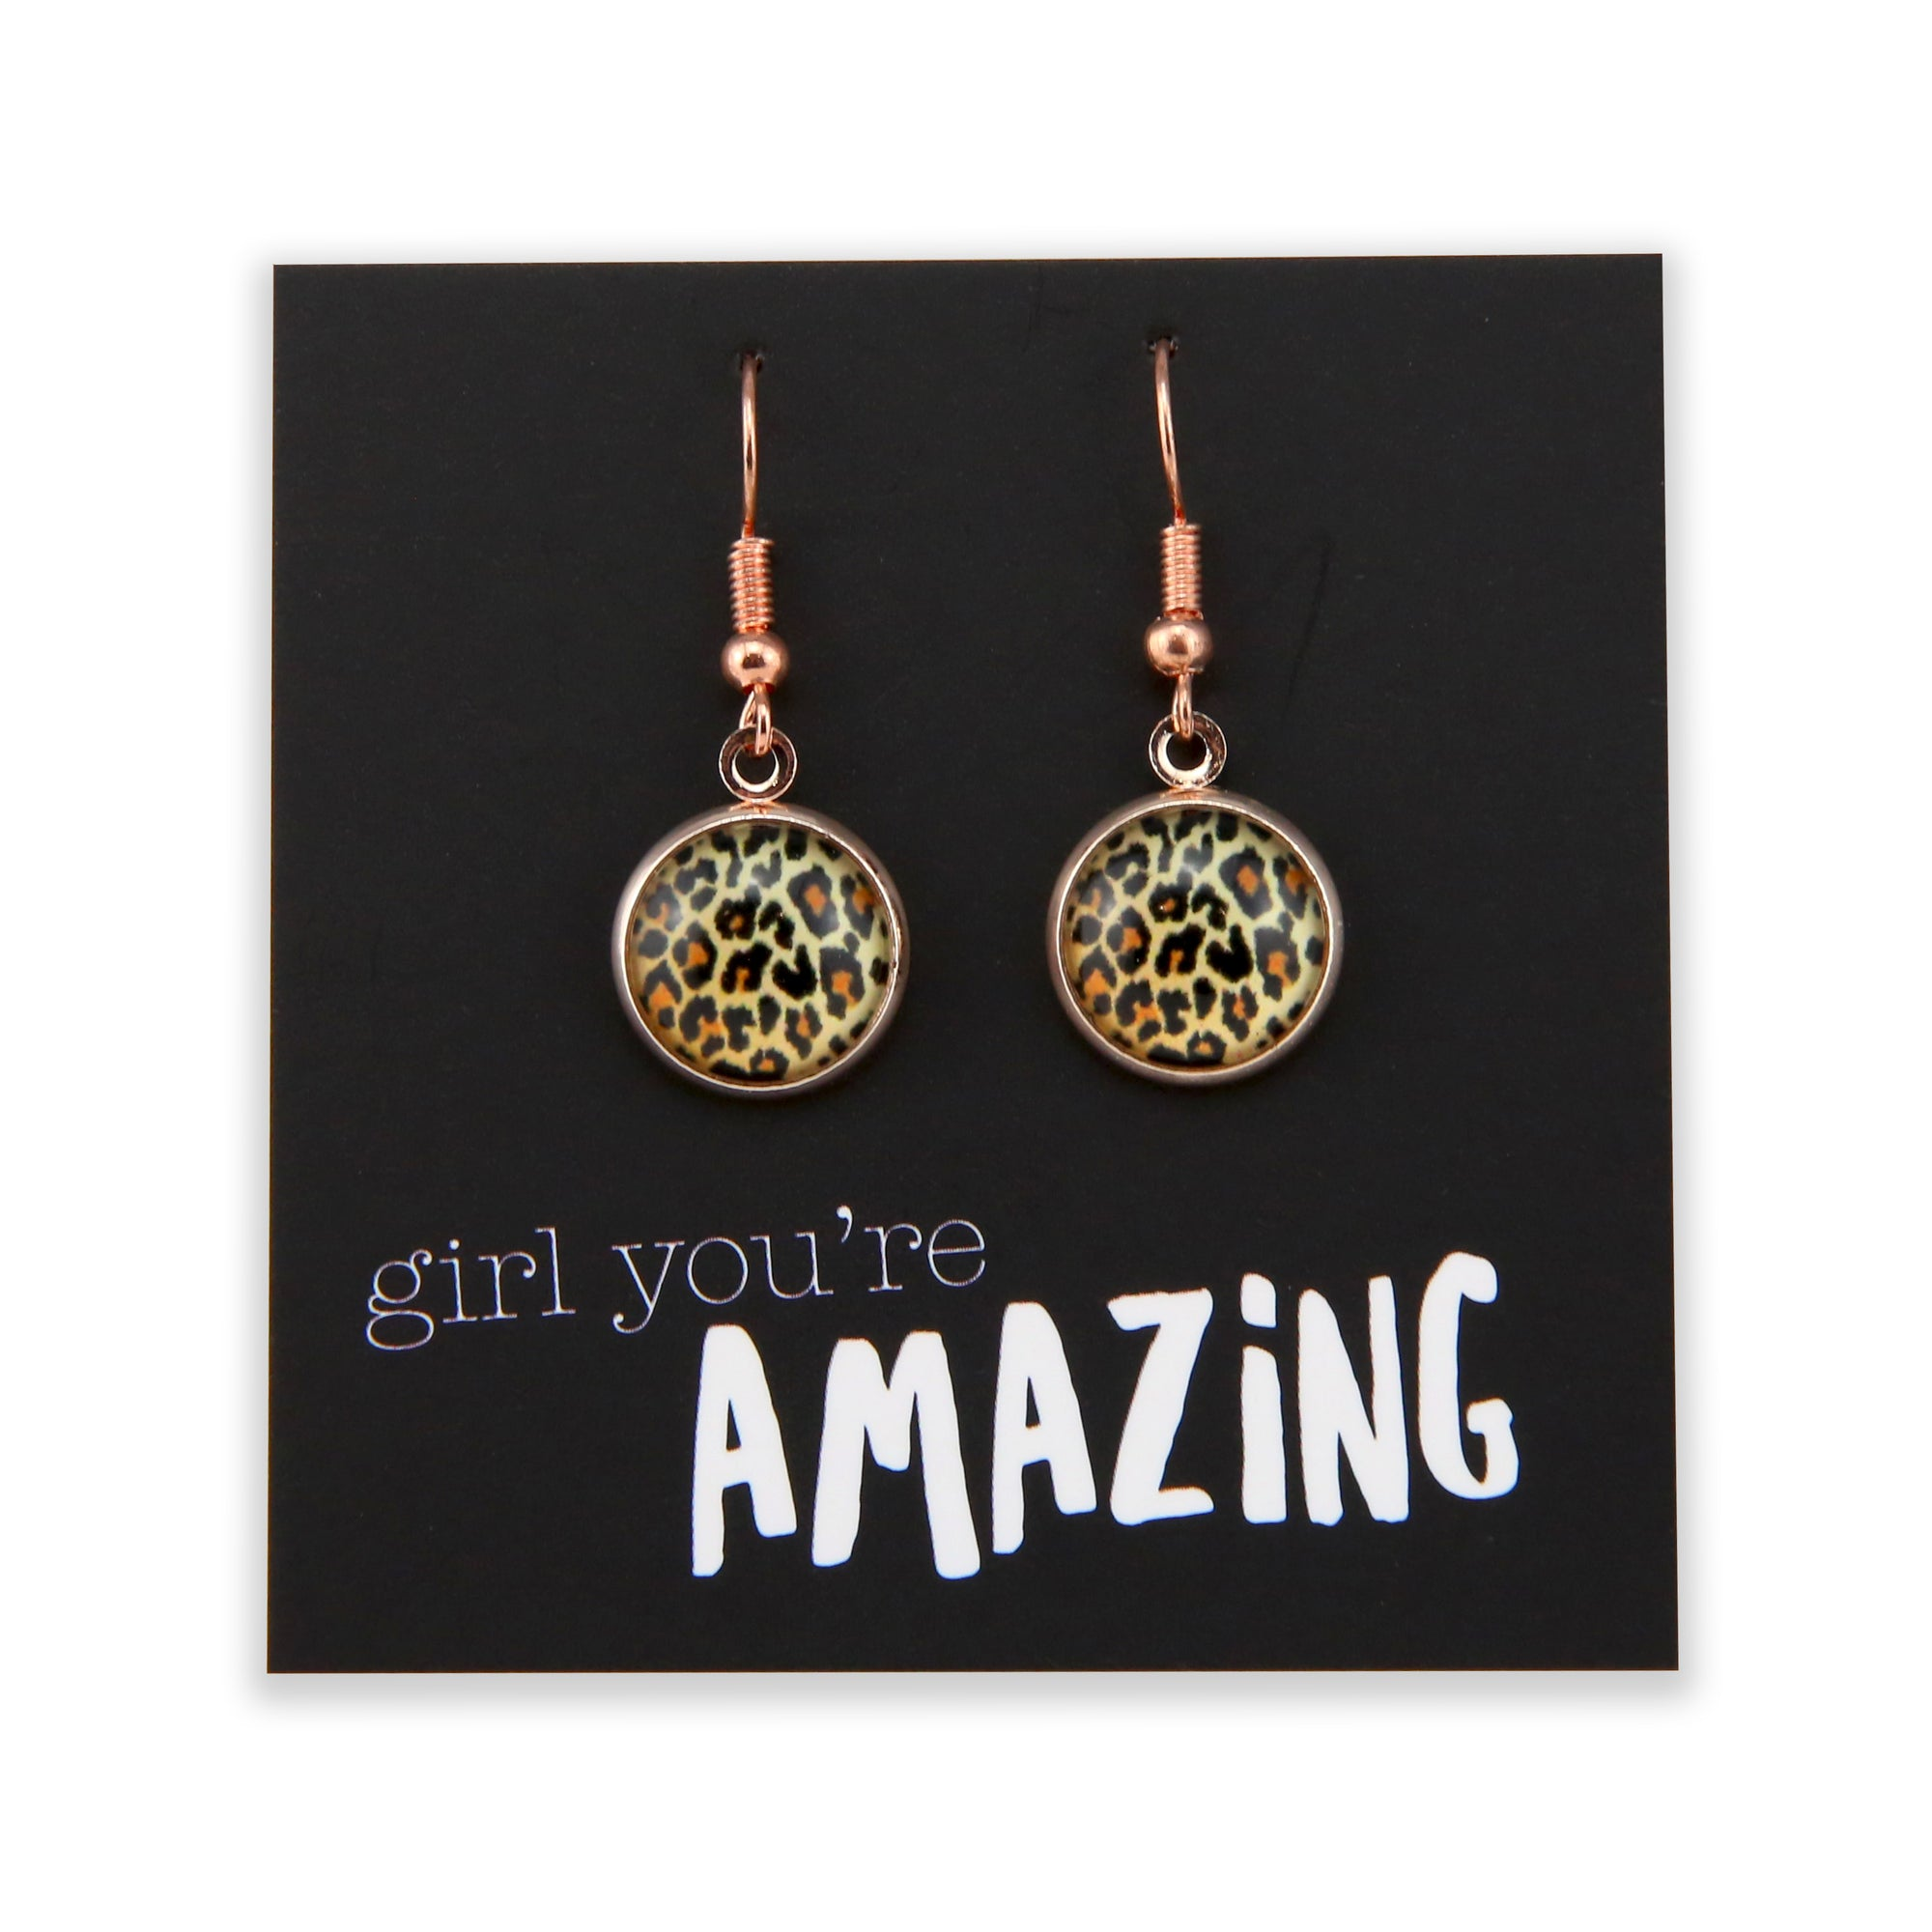 The STRONG WOMEN Collection - Girl You're Amazing - Stainless Steel Rose Gold Dangle Earrings - Wild Thing Leopard (9814)